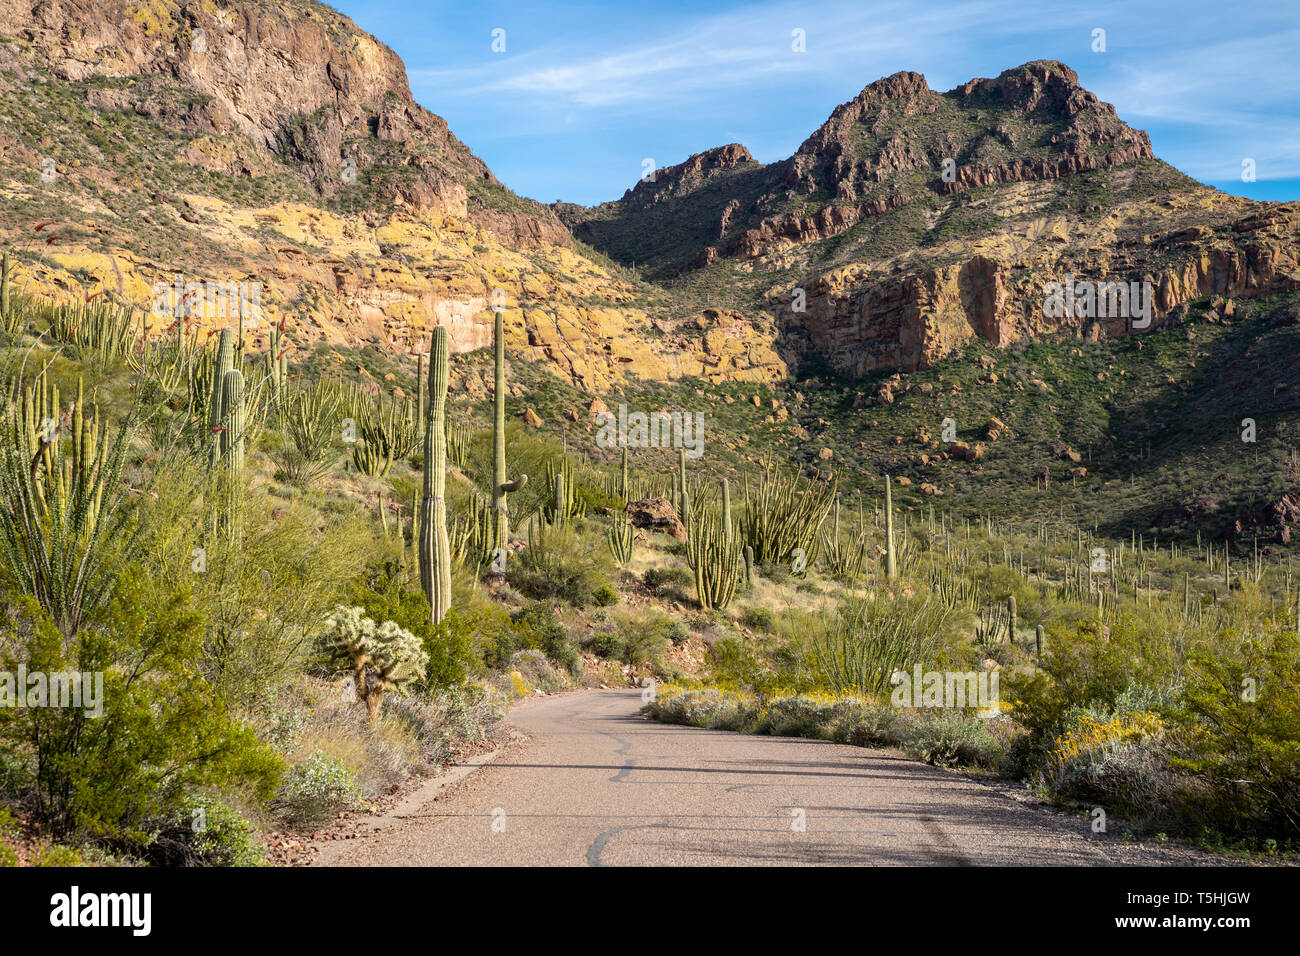 Organ Pipe Cactus and Saguaro cacti grow together in harmony along Ajo Mountain Drive in Arizona in the National Monument - Stock Image